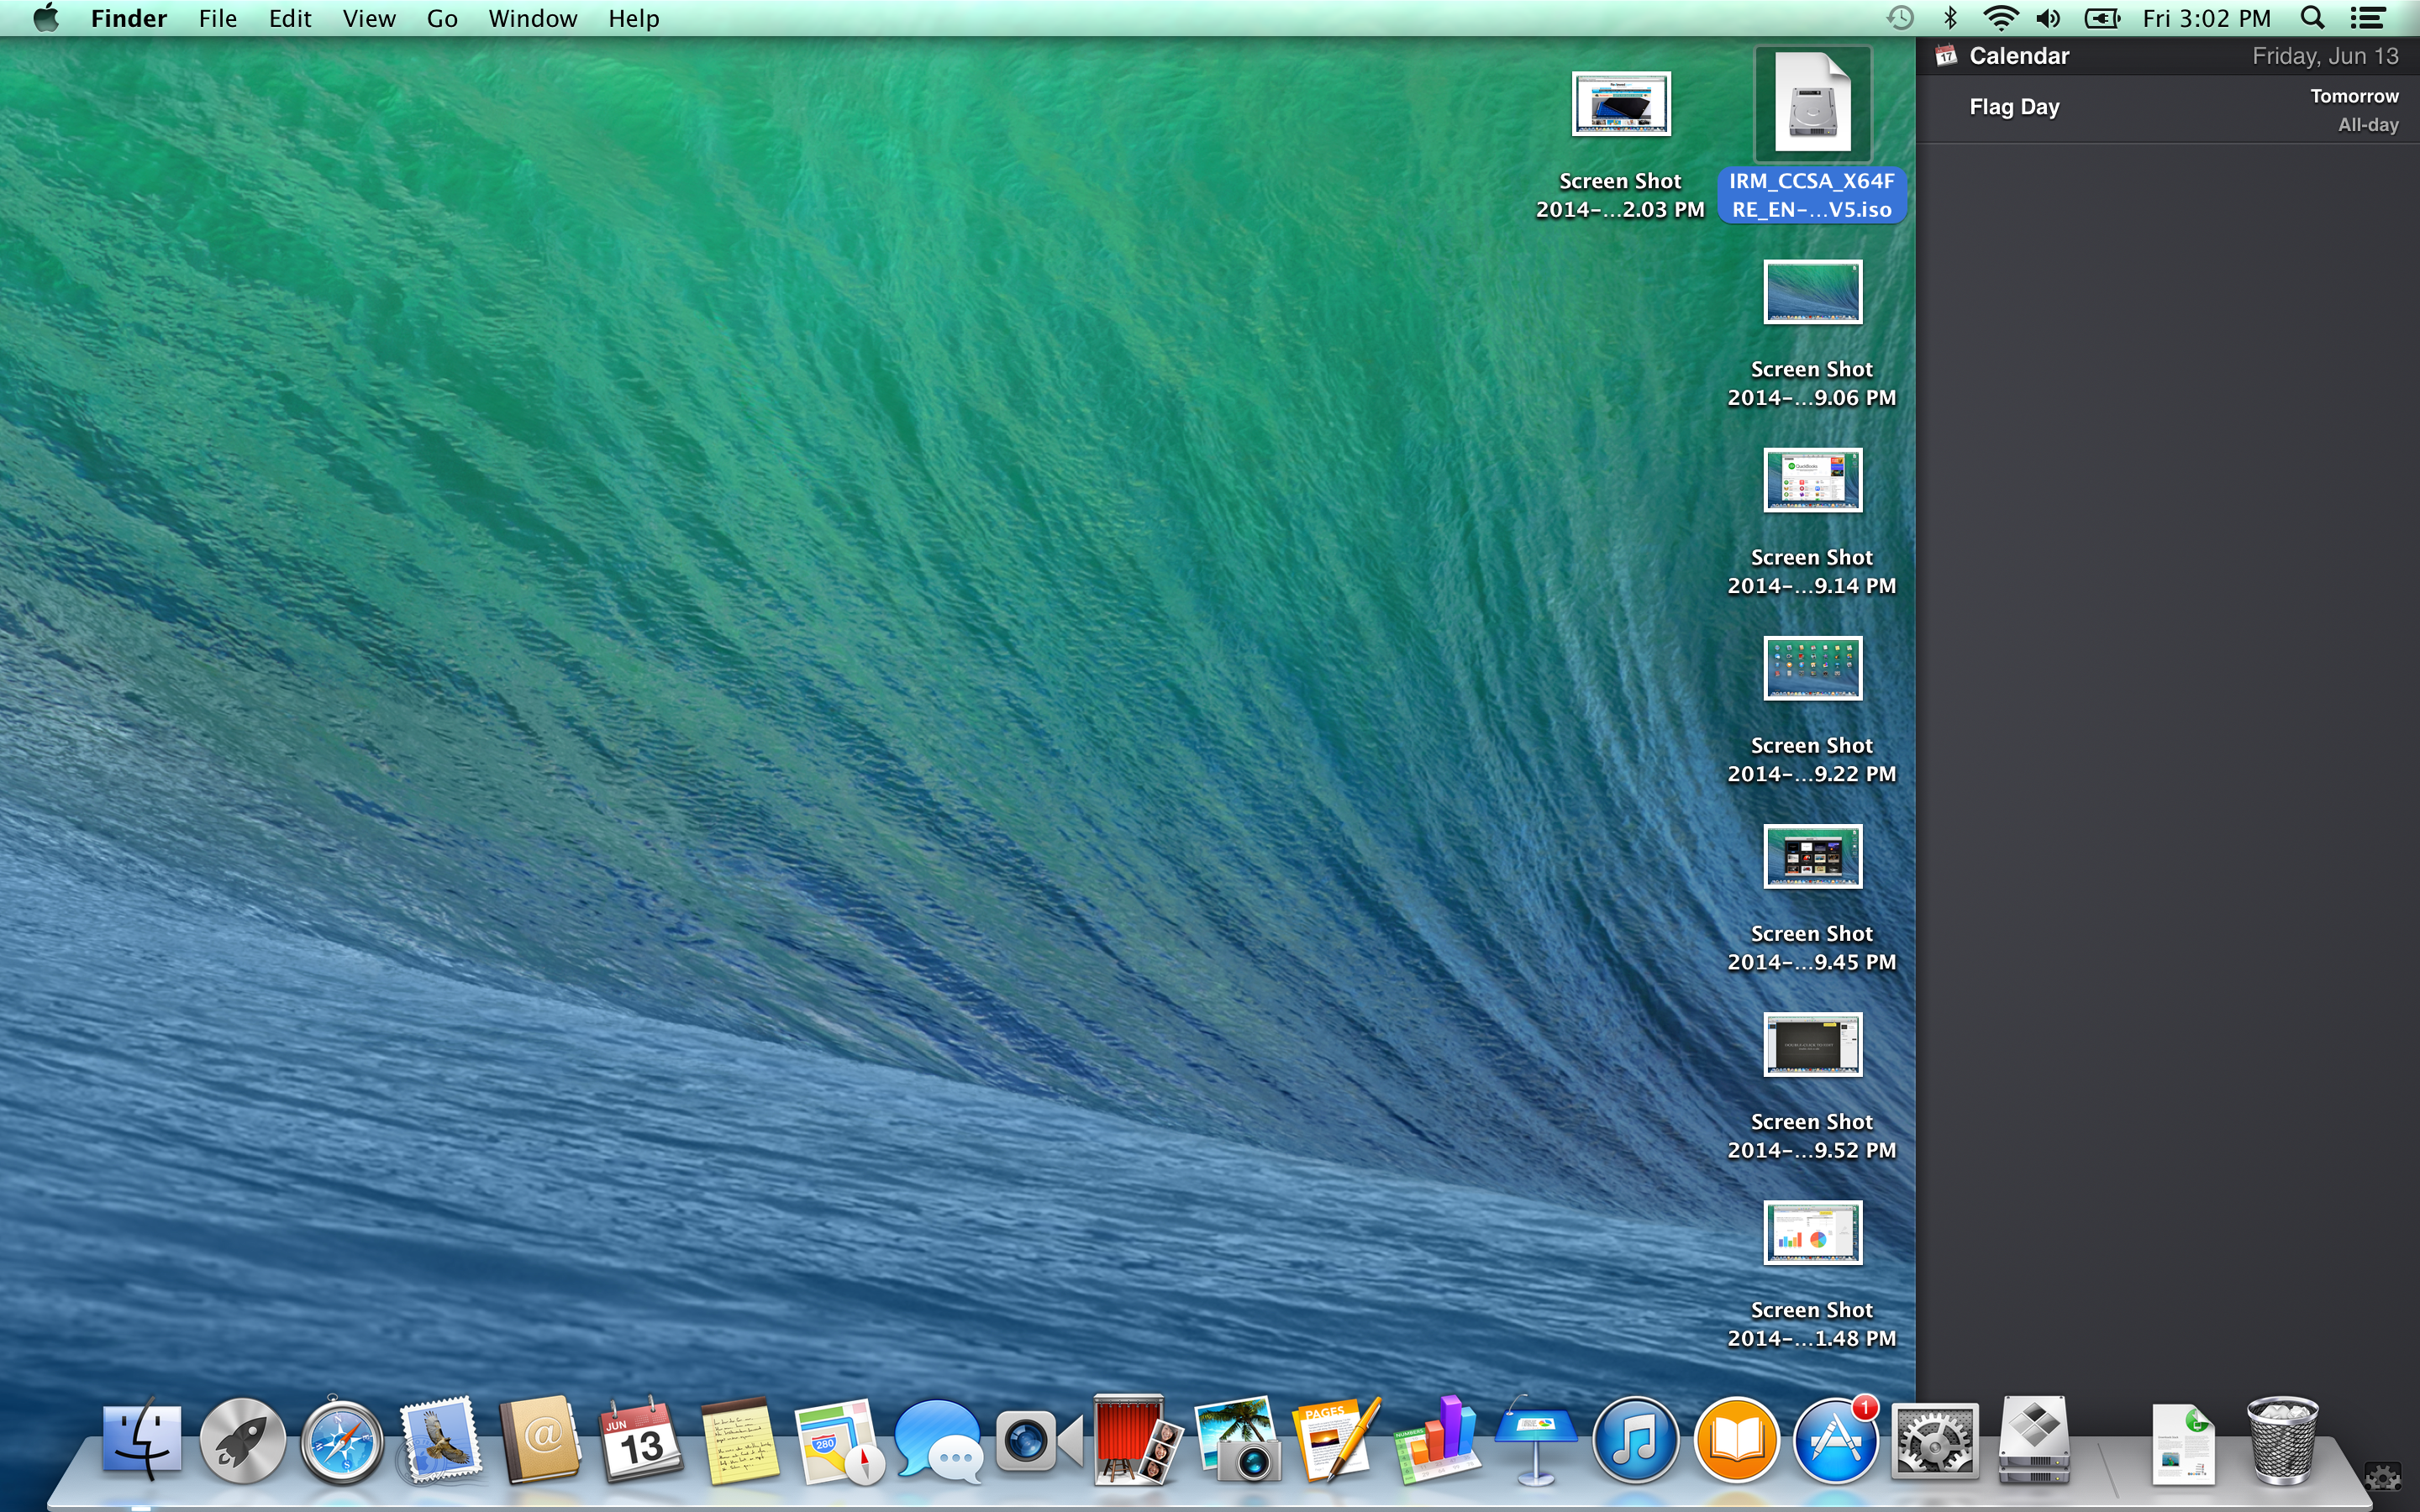 A screenshot of the Apple MacBook Pro with Retina Display's messages underlay.